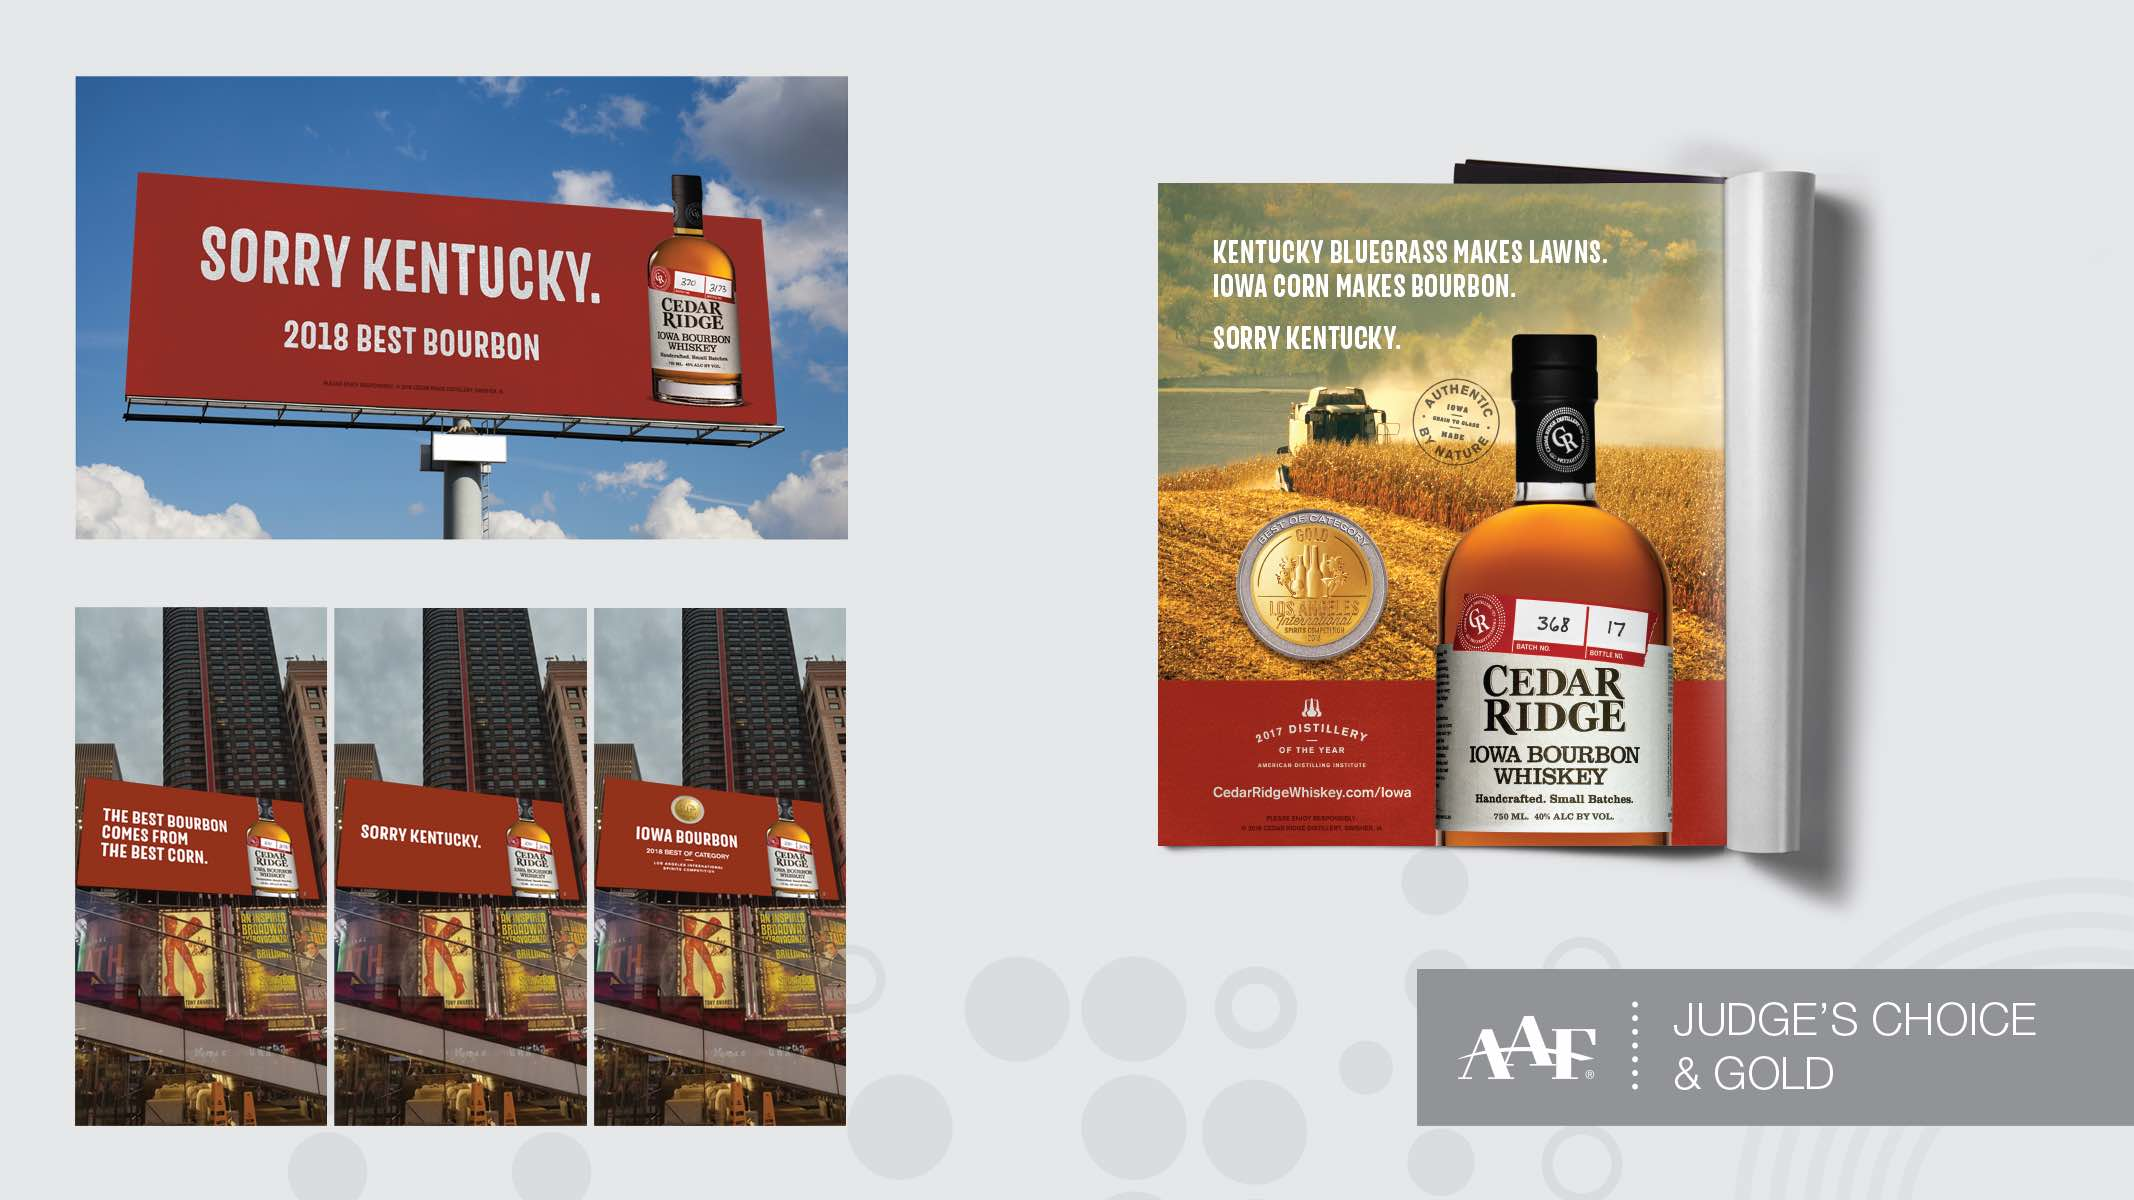 Sorry Kentucky Campaign AAF award winner